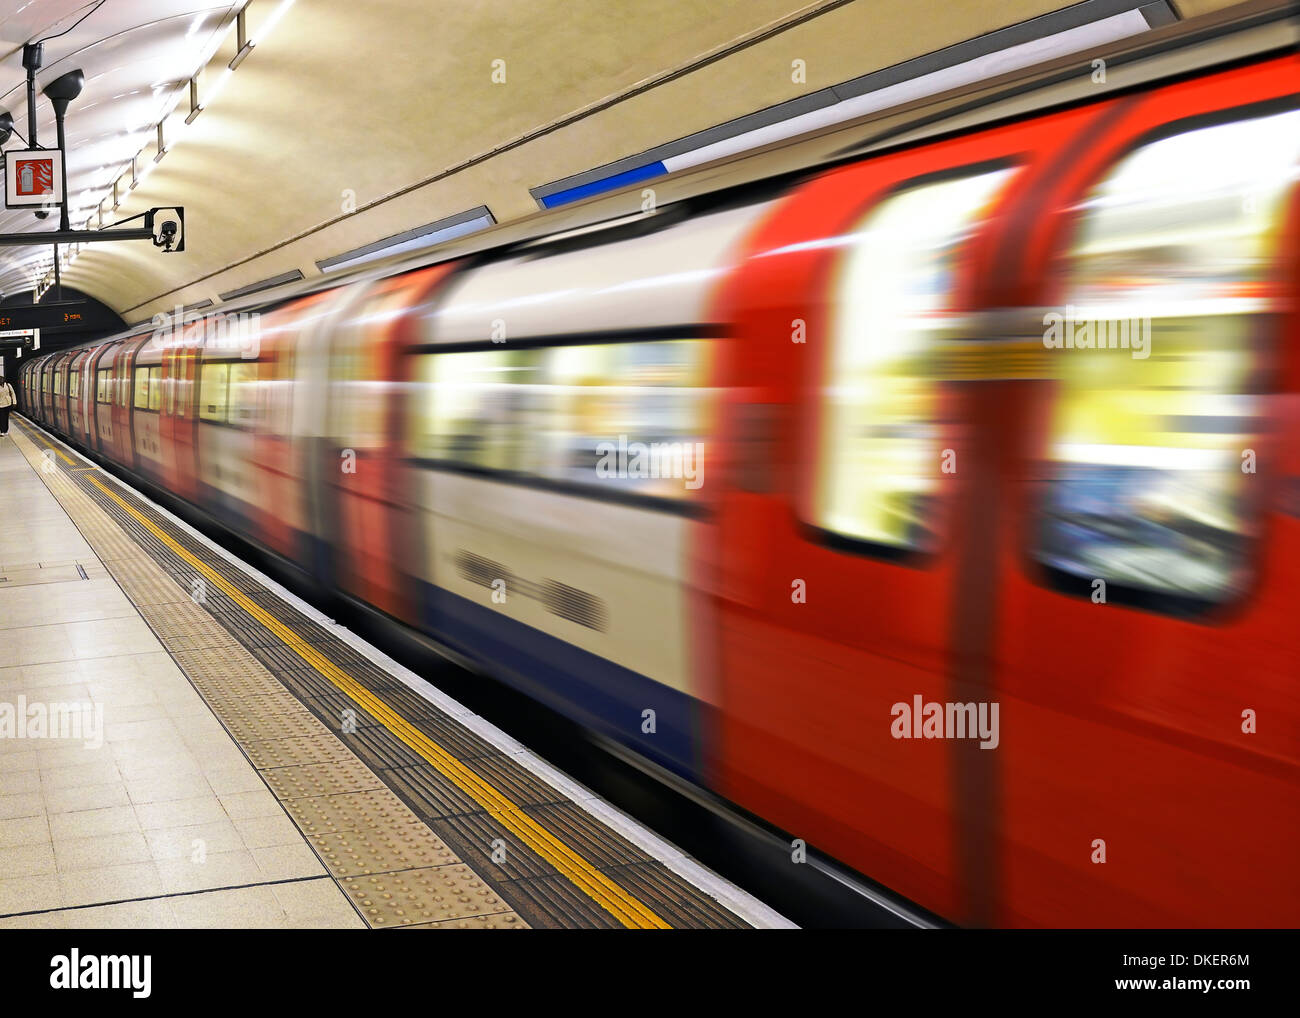 London Underground Train Pulling Out of a Station, Charing Cross, London, Uk. - Stock Image